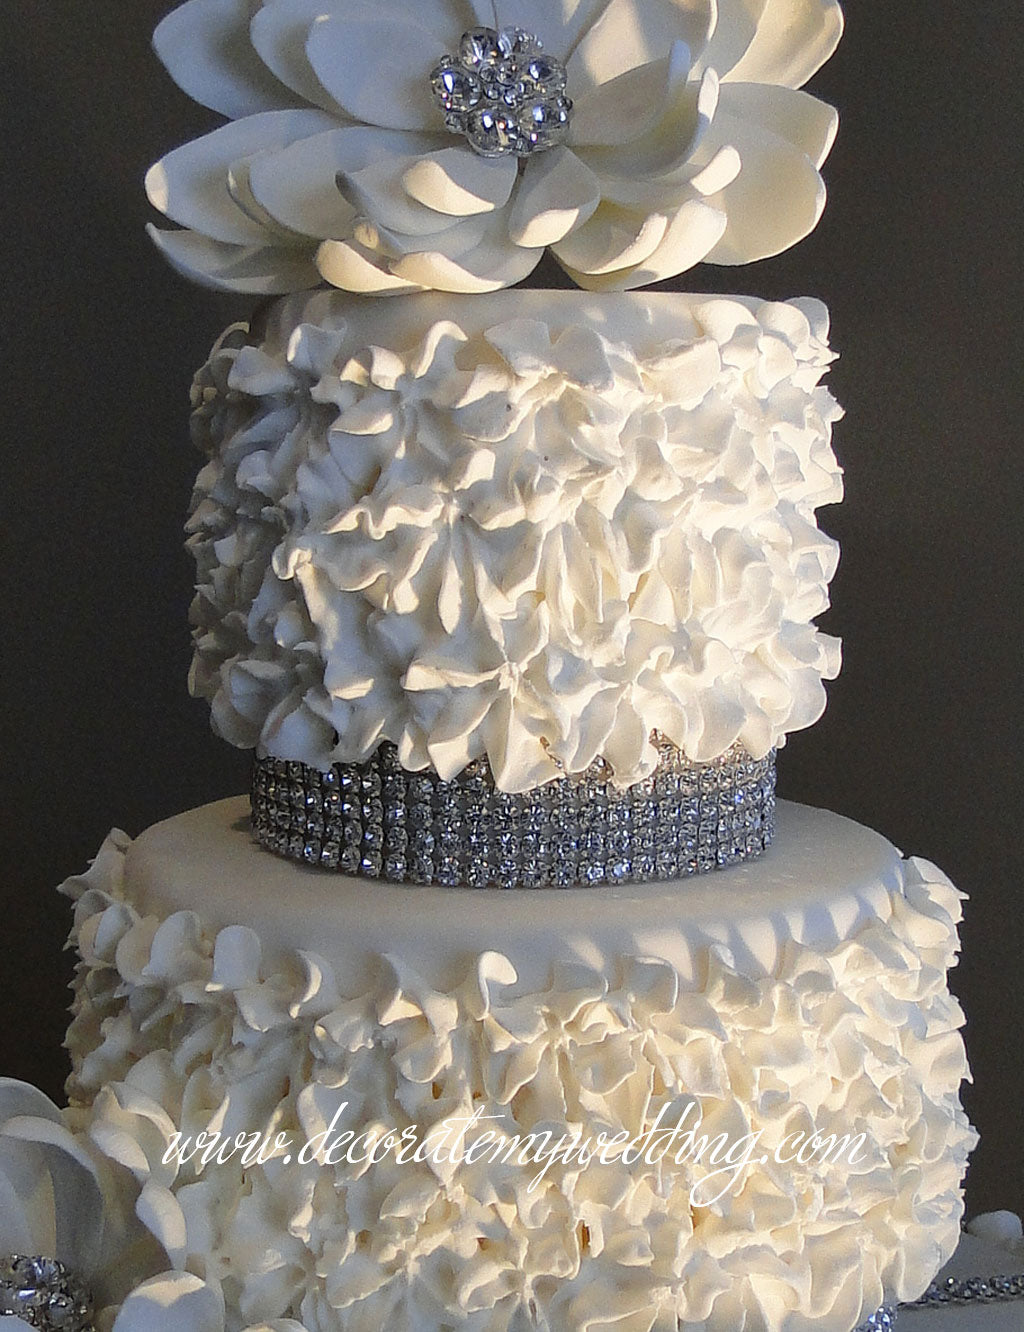 The ruffles look so real that our artificial cakes will look totally real when displayed at your wedding.